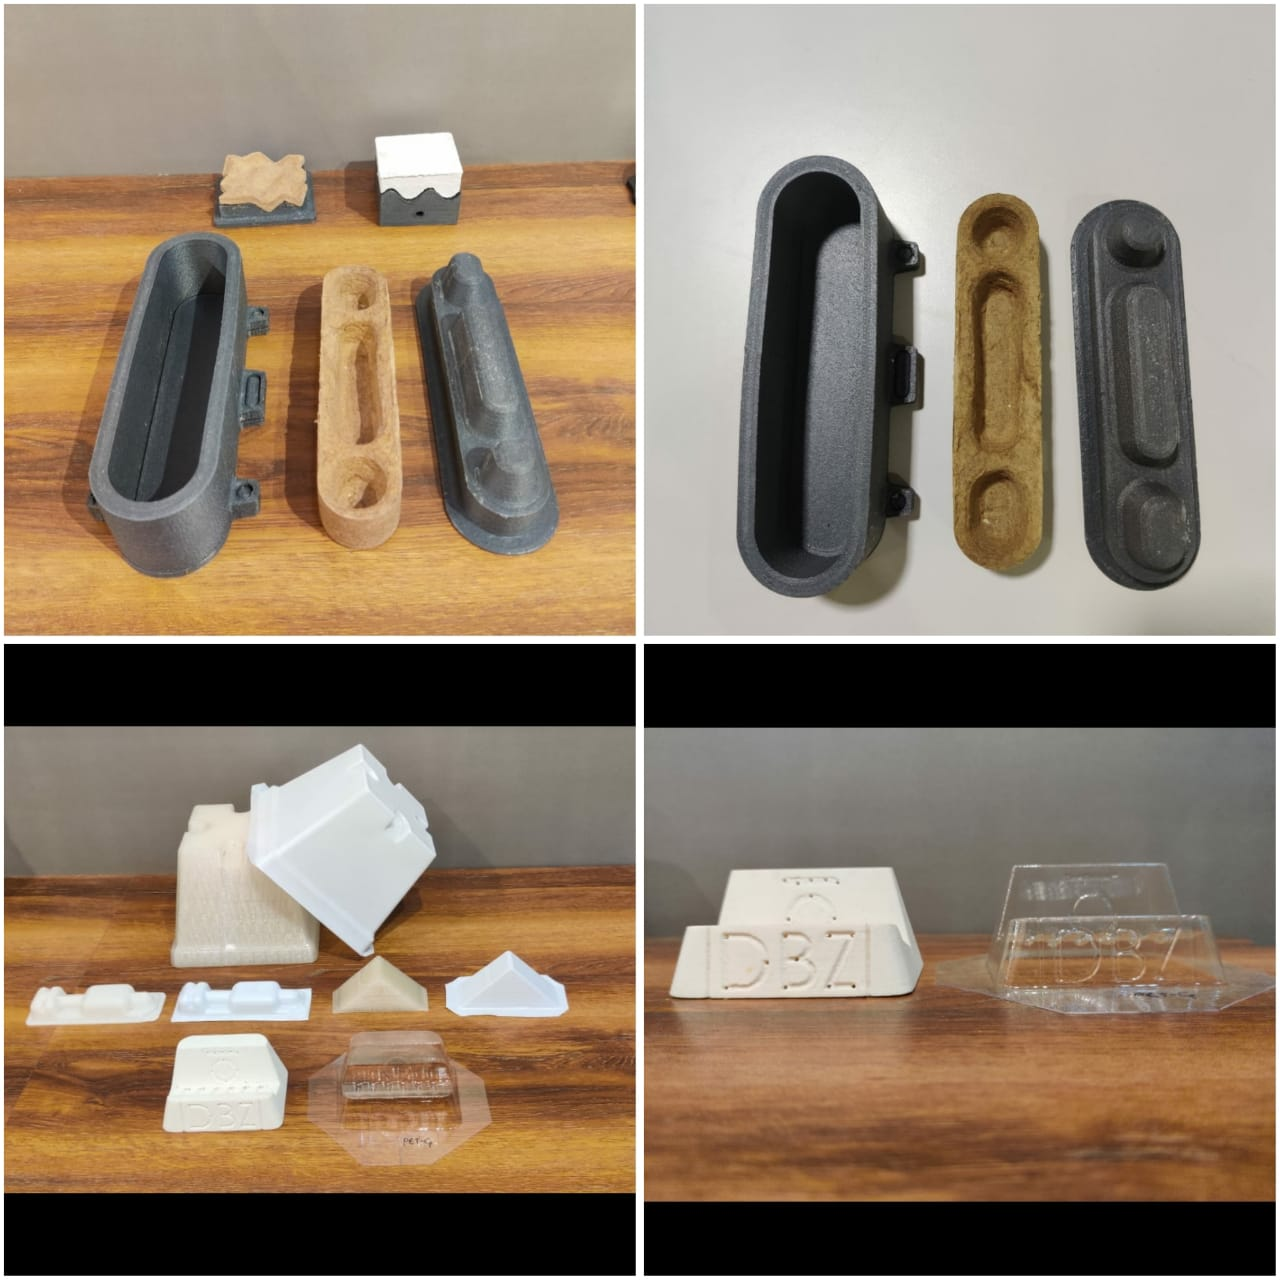 3d printing in packaging